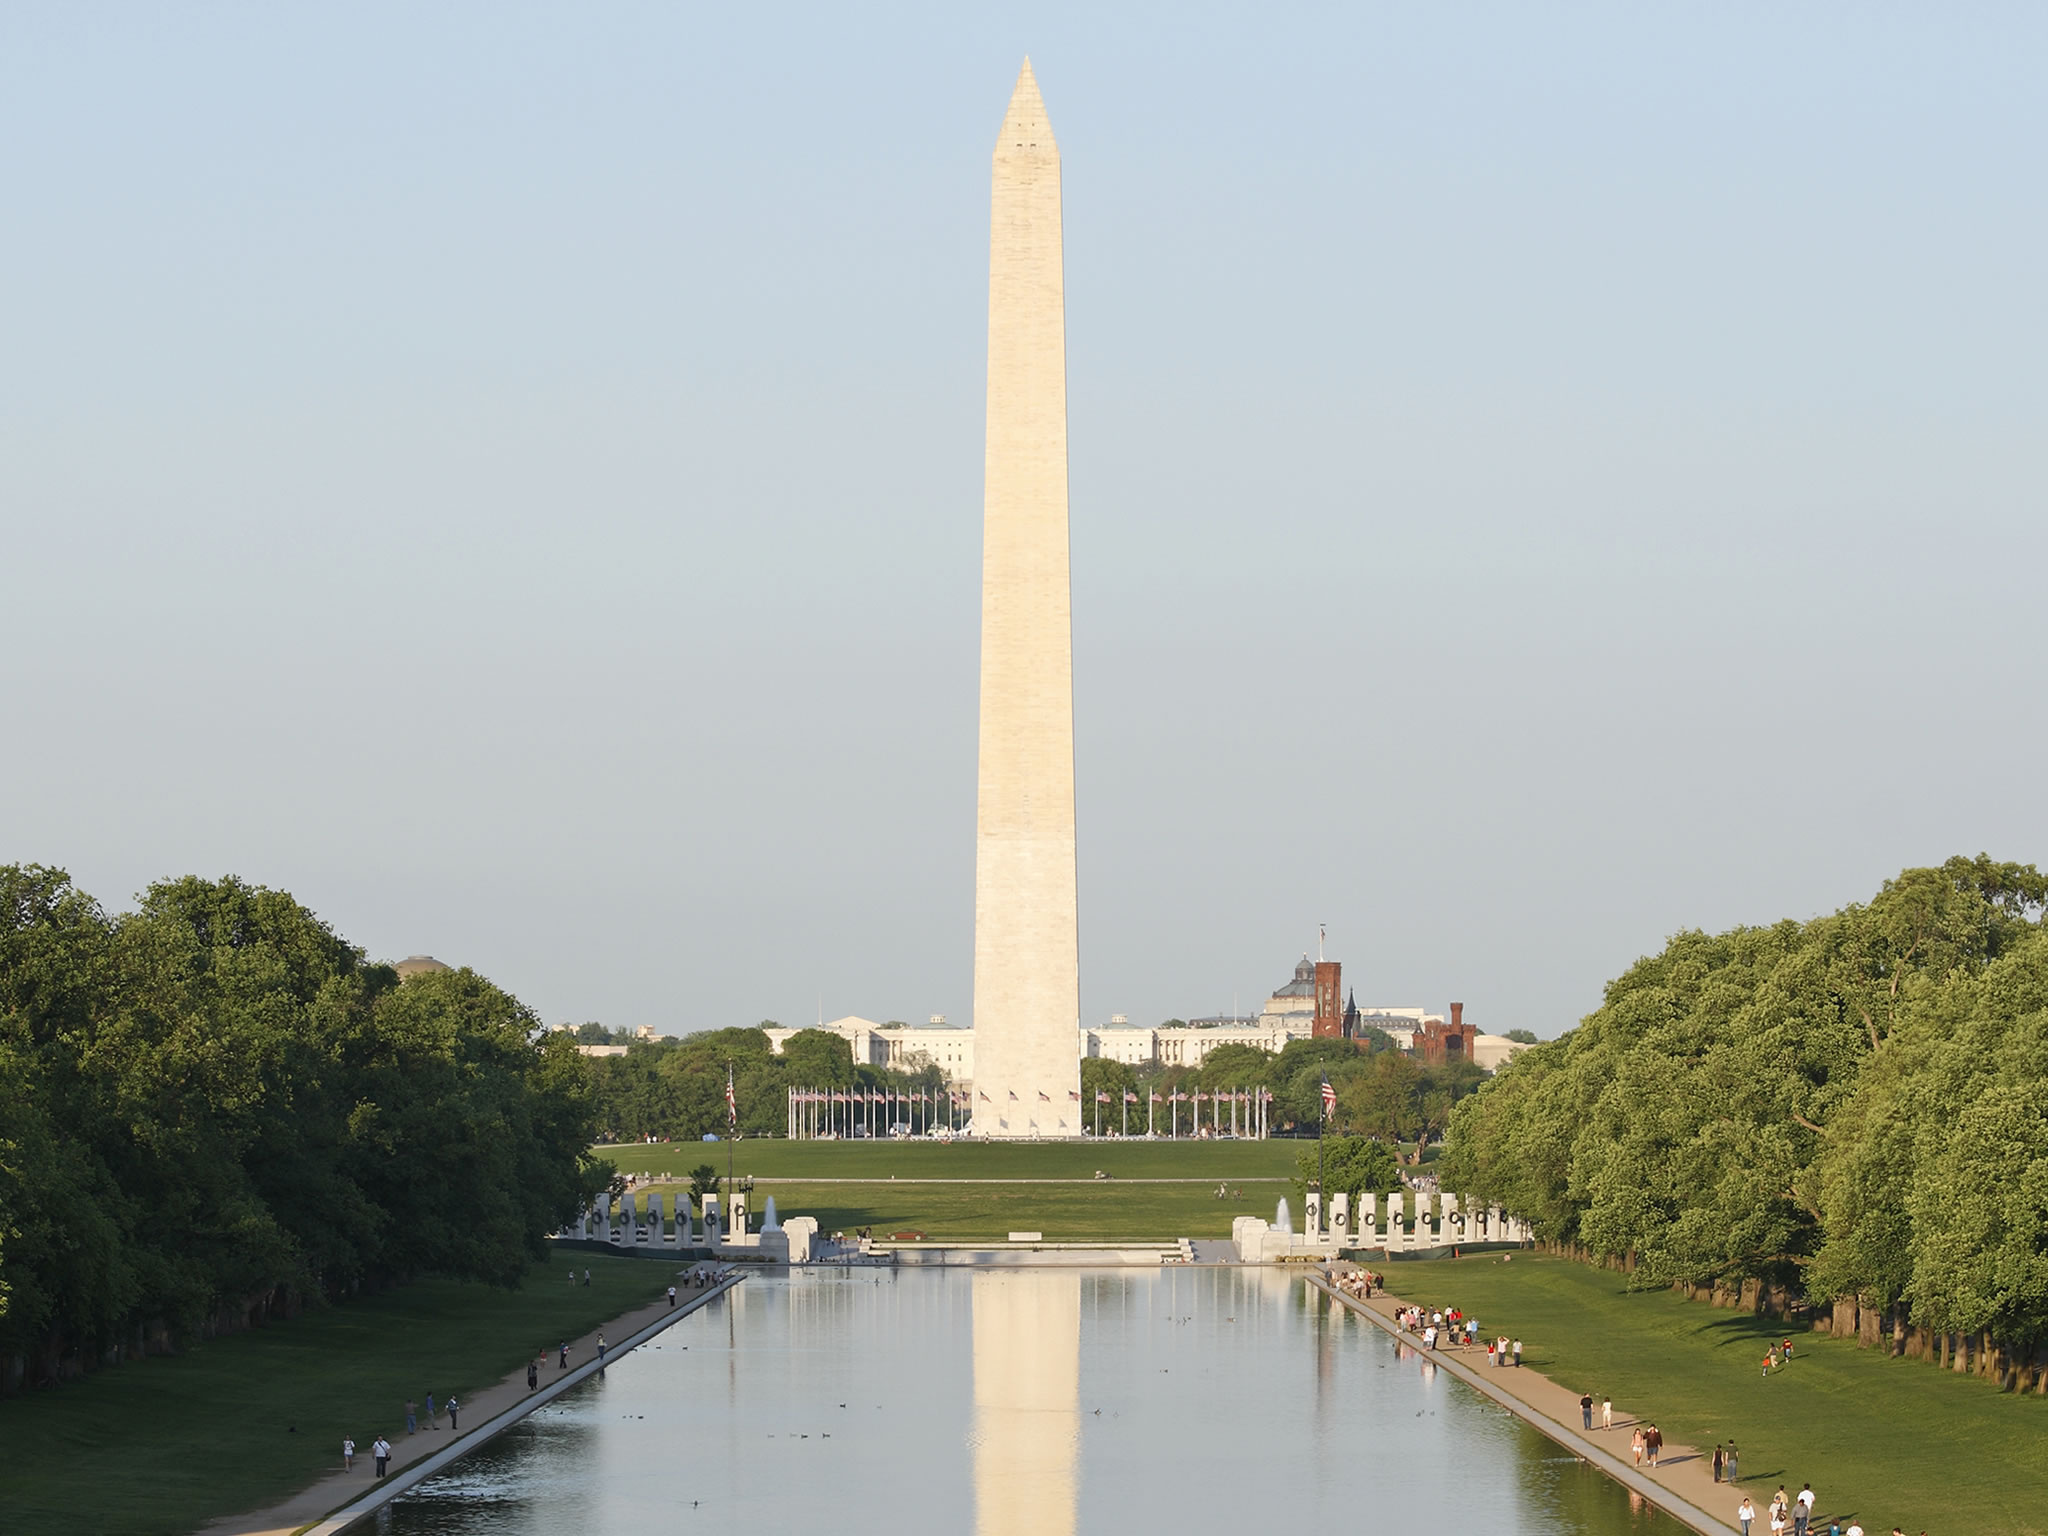 HITH-5-things-you-might-not-know-about-the-washington-monument.jpg